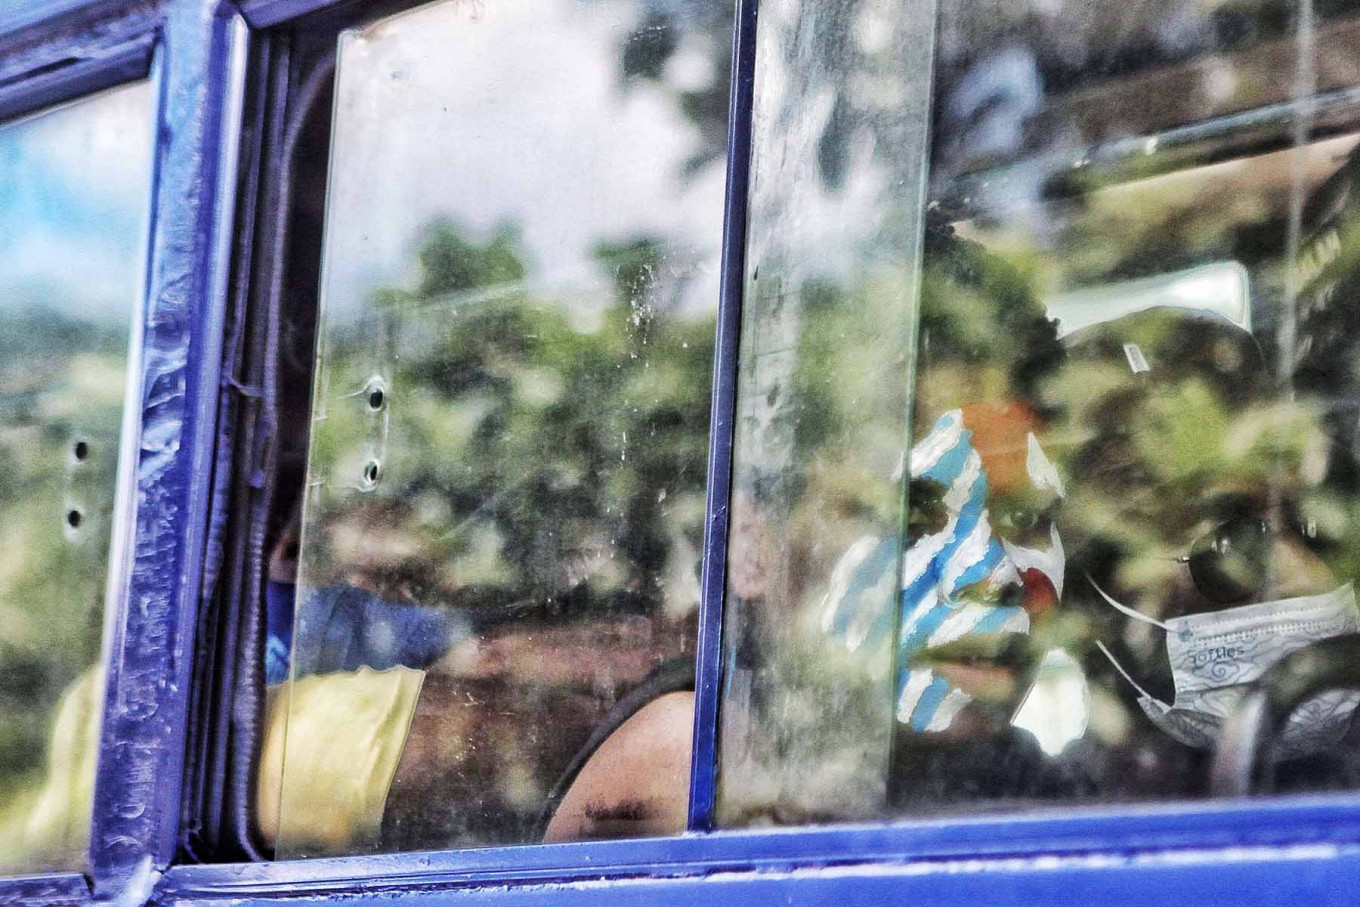 Members of the Papuan Students Alliance (AMP) take a ride in a bus in Jakarta on Dec. 1 prior to staging a rally in conjunction with the commemoration of the declaration of the West Papua State on Dec. 1, 1965. Rallygoers reject the government's policy to give special autonomy to Indonesia's easternmost provinces and demand that the people of West Papua are granted self-determination instead. JP/Seto Wardhana